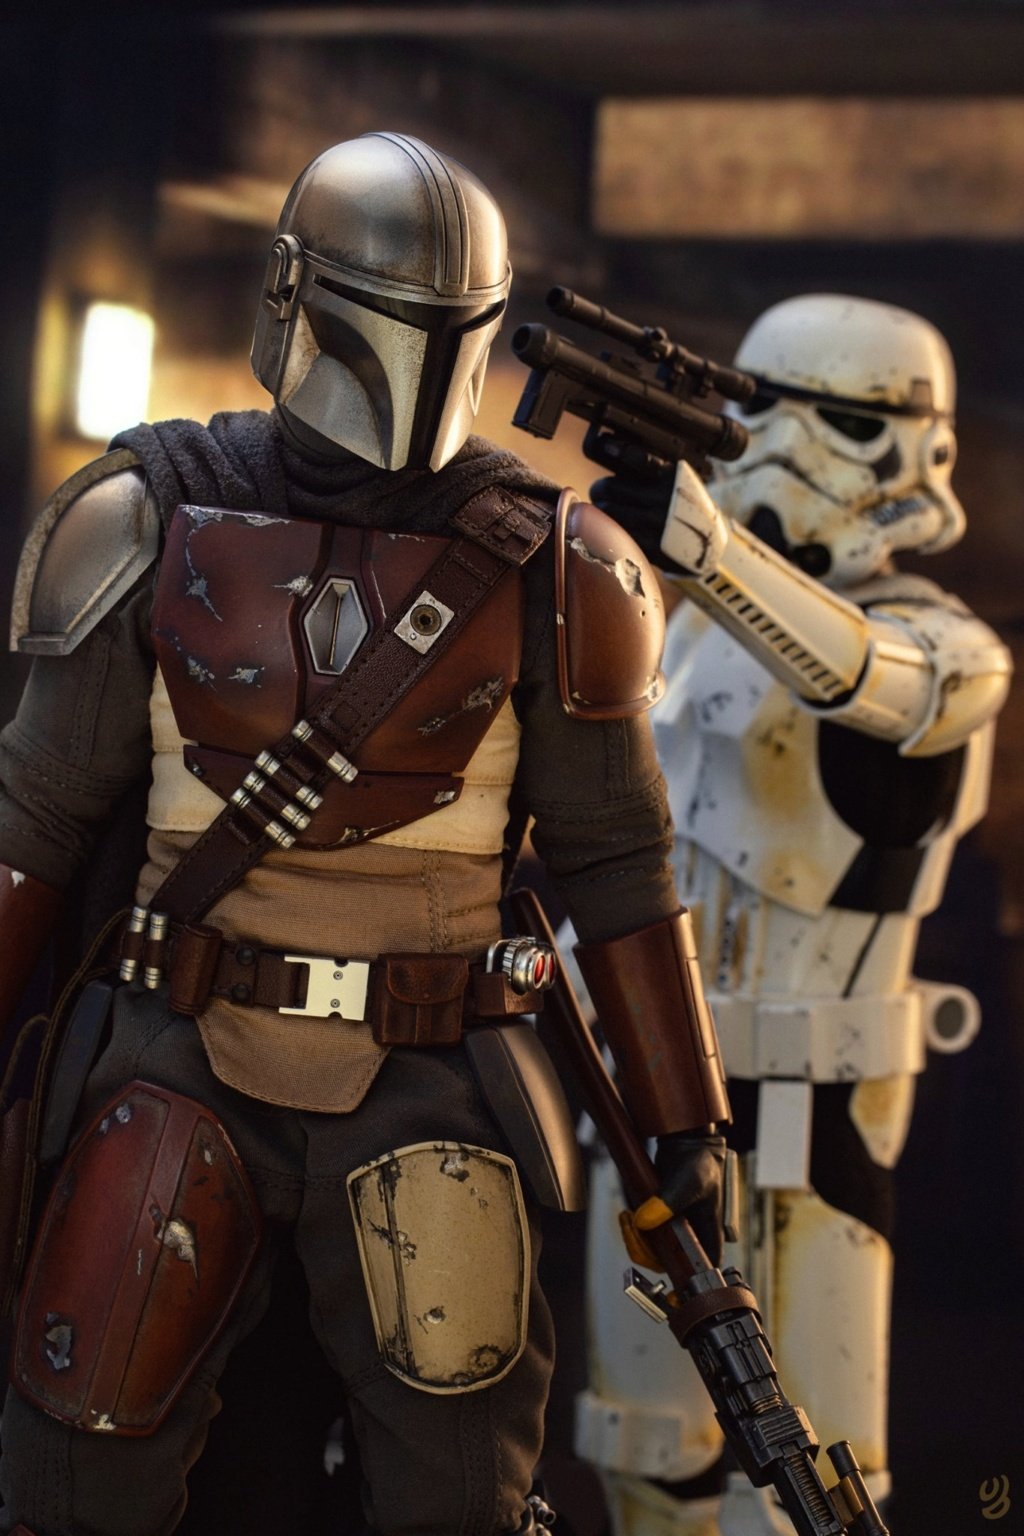 NEW PRODUCT: HOT TOYS: THE MANDALORIAN -- THE MANDALORIAN 1/6TH SCALE COLLECTIBLE FIGURE 2605